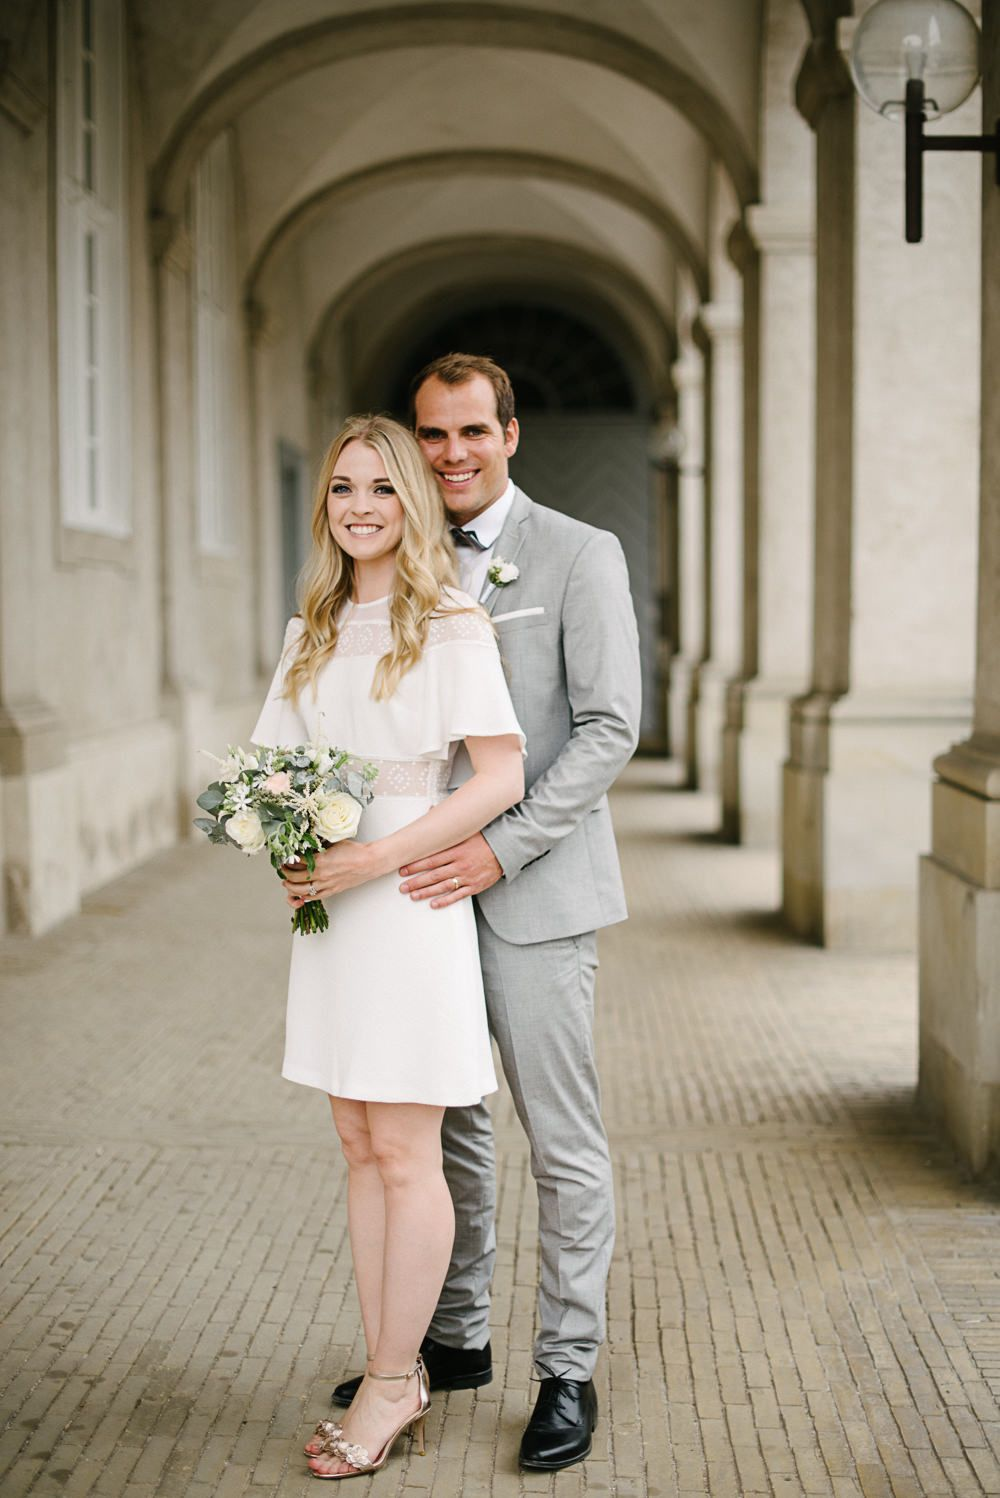 Stylish City Hall Copenhagen Elopement By Rochelle Coote Photography City Hall Wedding Dress Civil Wedding Dresses Minimal Wedding Dress